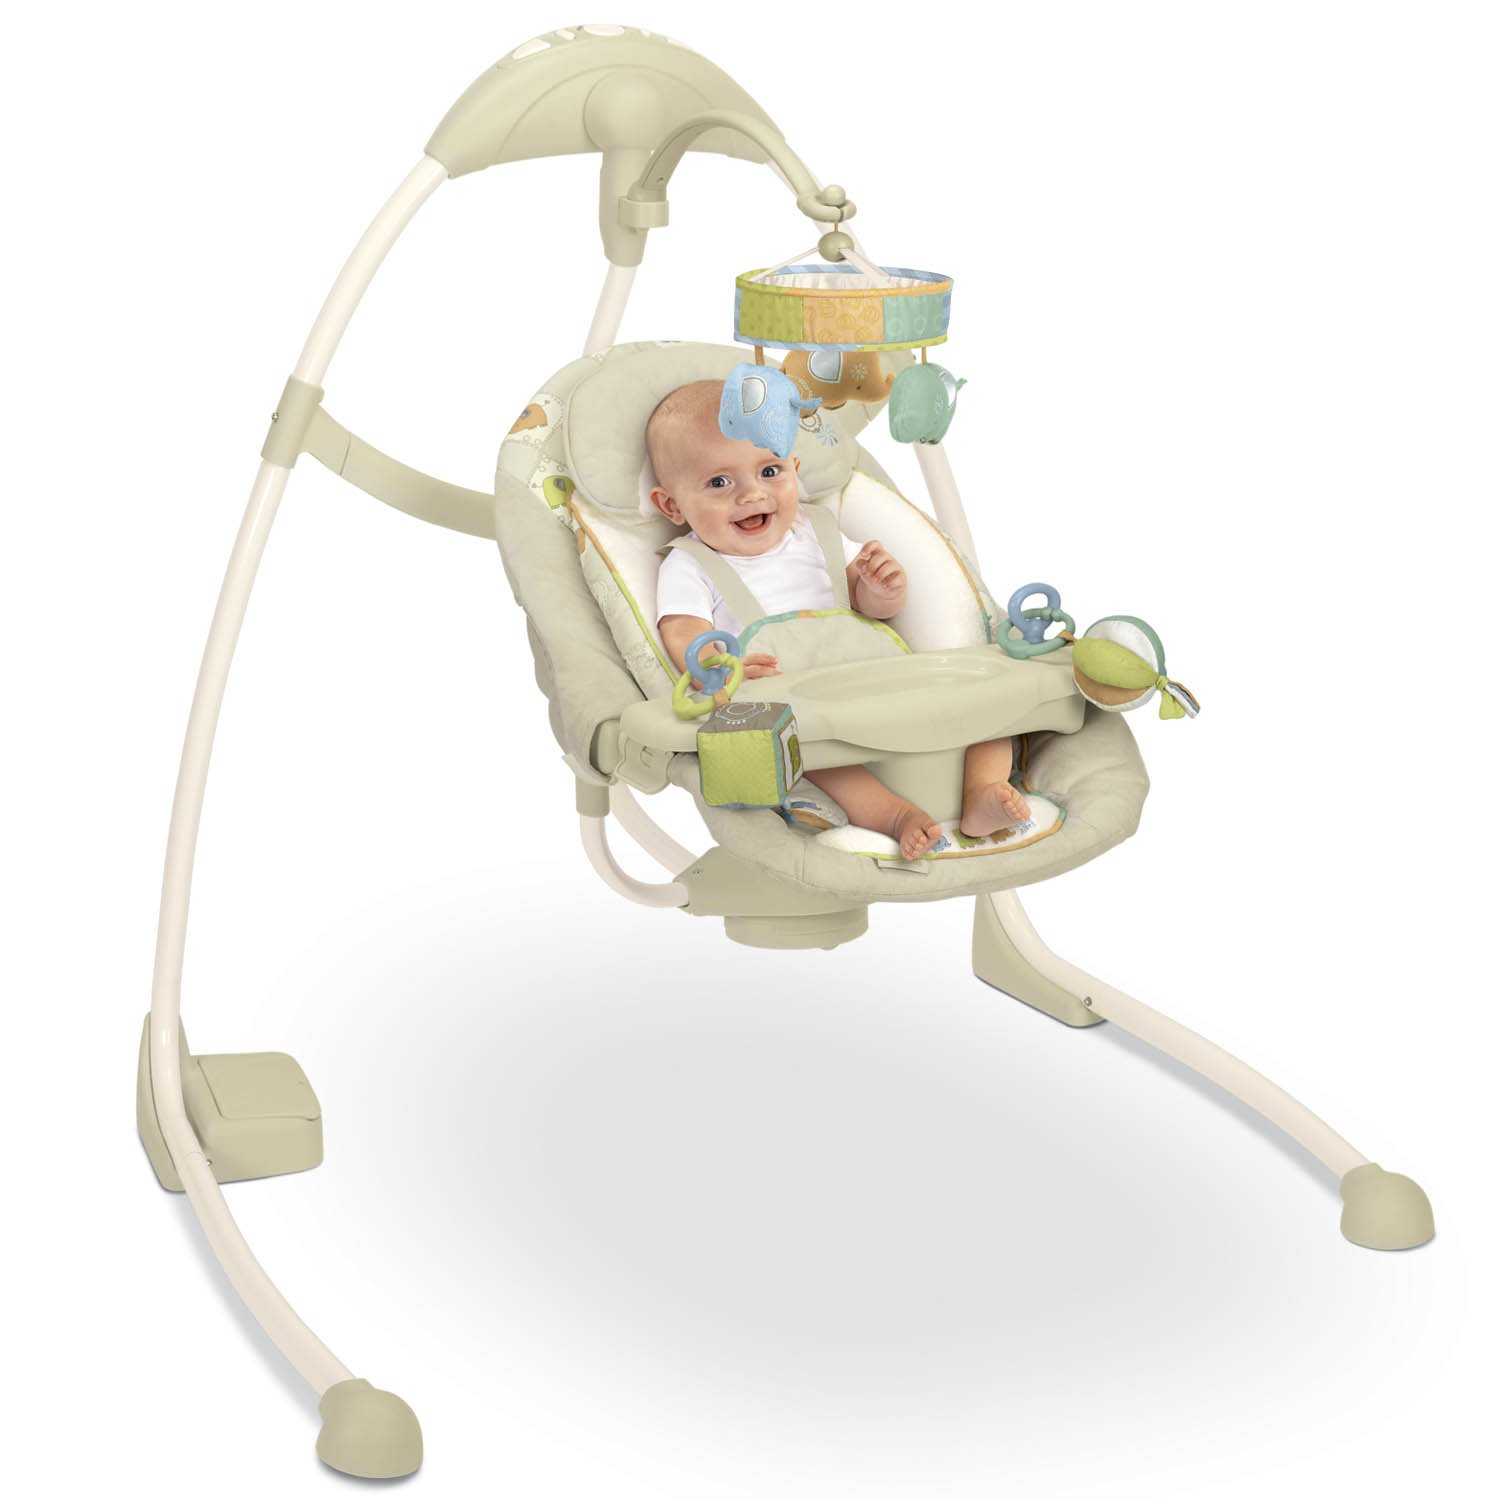 b0ebbbf3b KIDS II Bright Starts Kashmir Ingenuity Full Size Swing: Amazon.ca: Baby